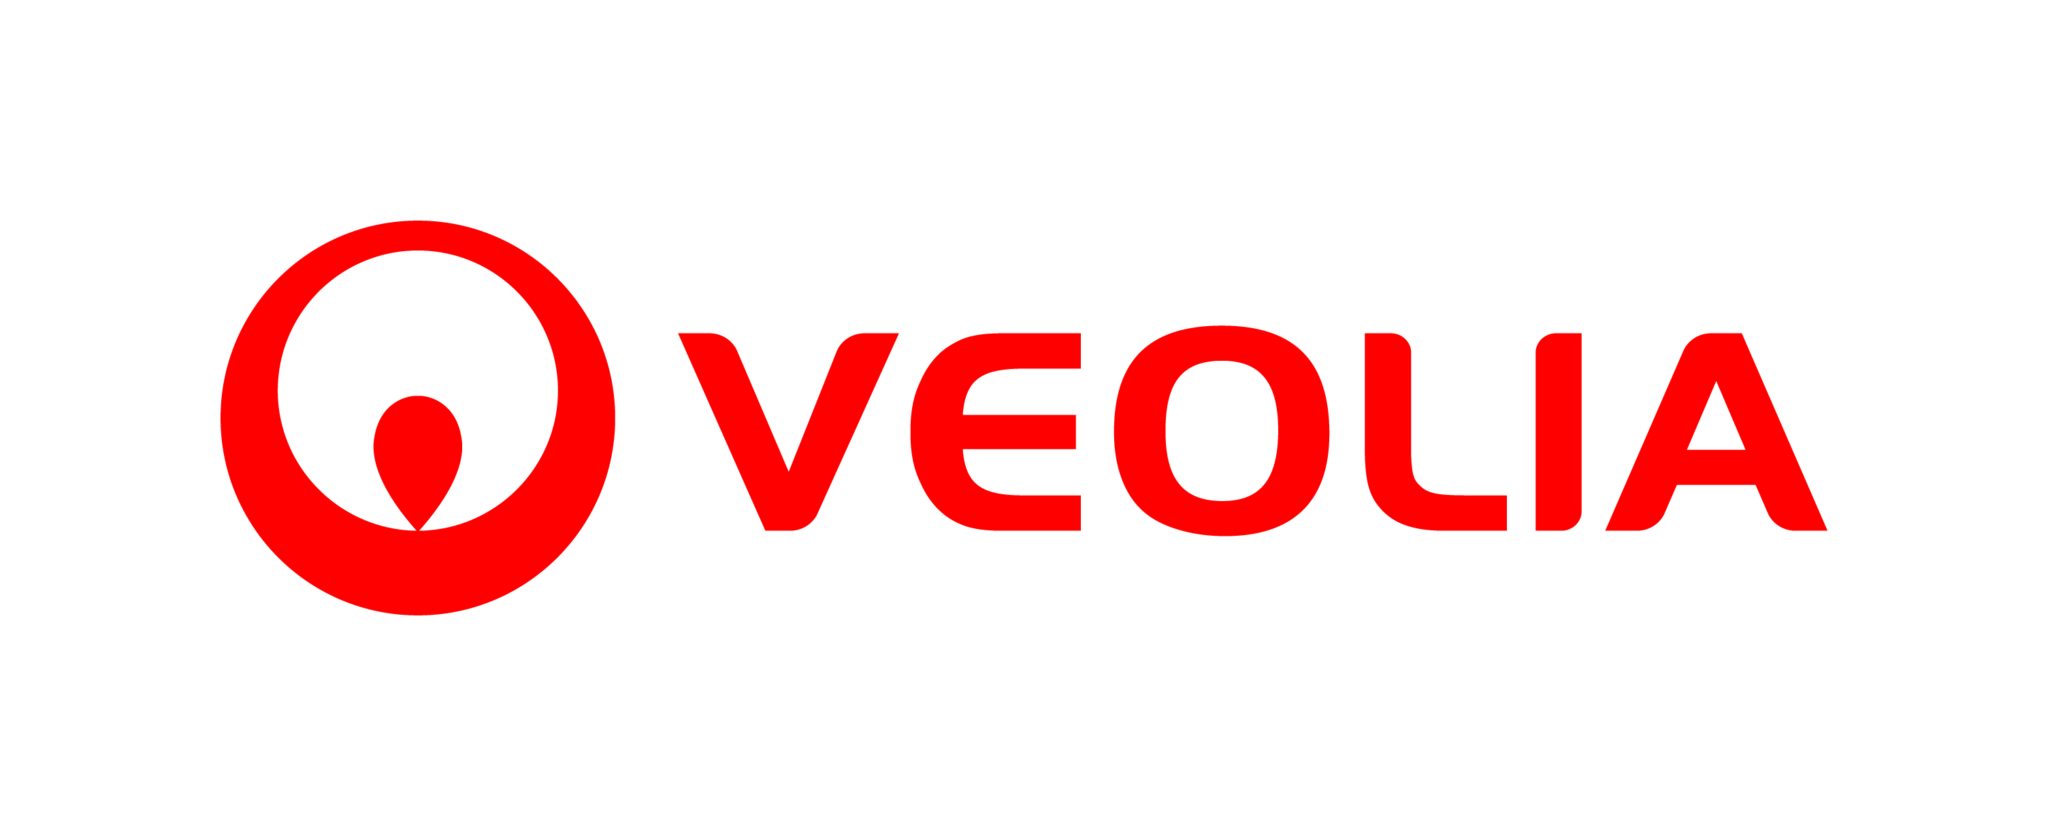 Logo veolia sbs references